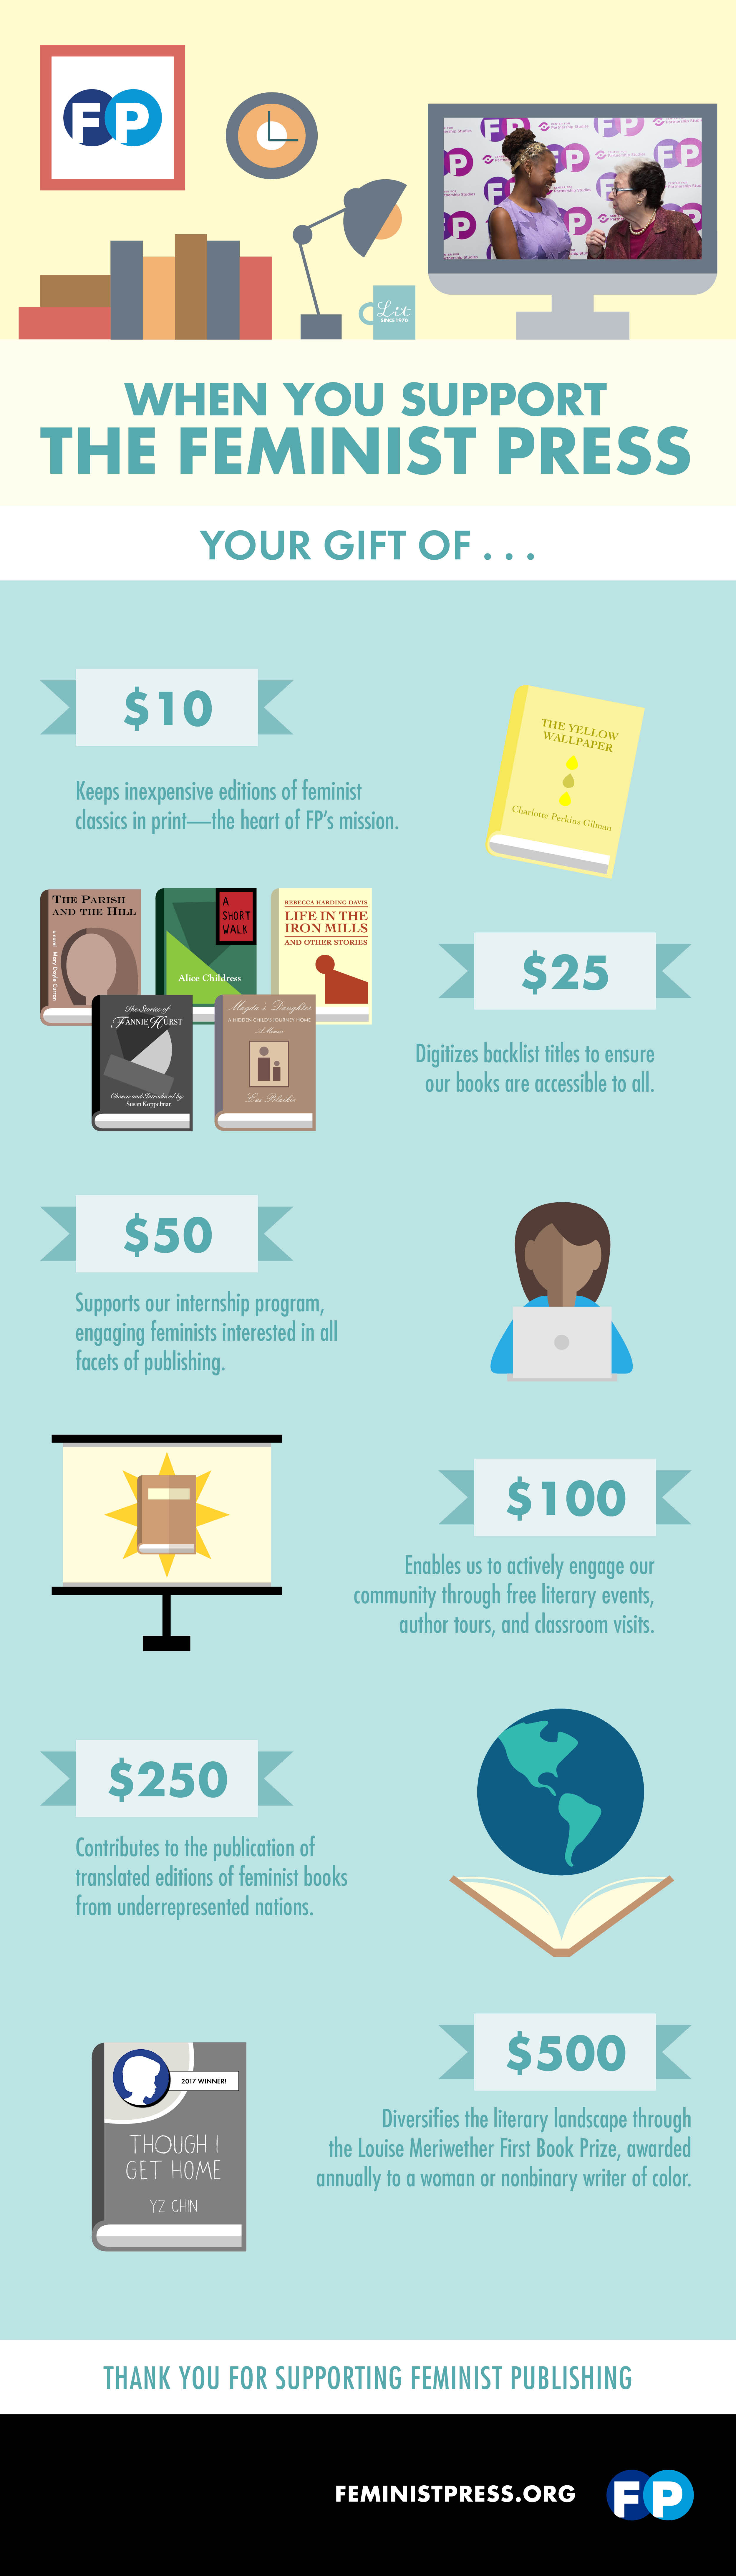 2017_FP_Donations_INFOGRAPHIC.jpg